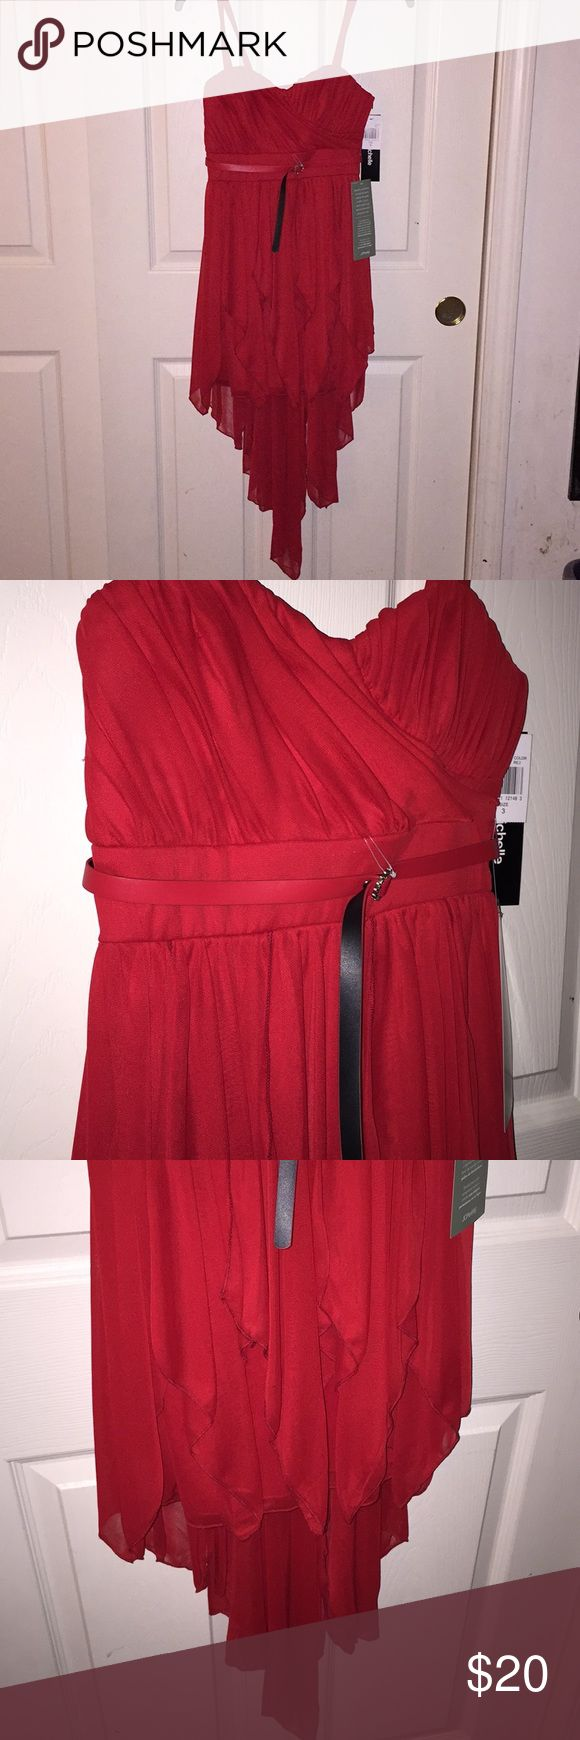 Red JcPenney Homecoming/Formal Dress Red belted homecoming/formal dress with thin straps. Hi-Lo dress (long at the back and shorter at the front). Never worn, with tags. Message me/Comment if you want to see it modeled! jcpenney Dresses High Low